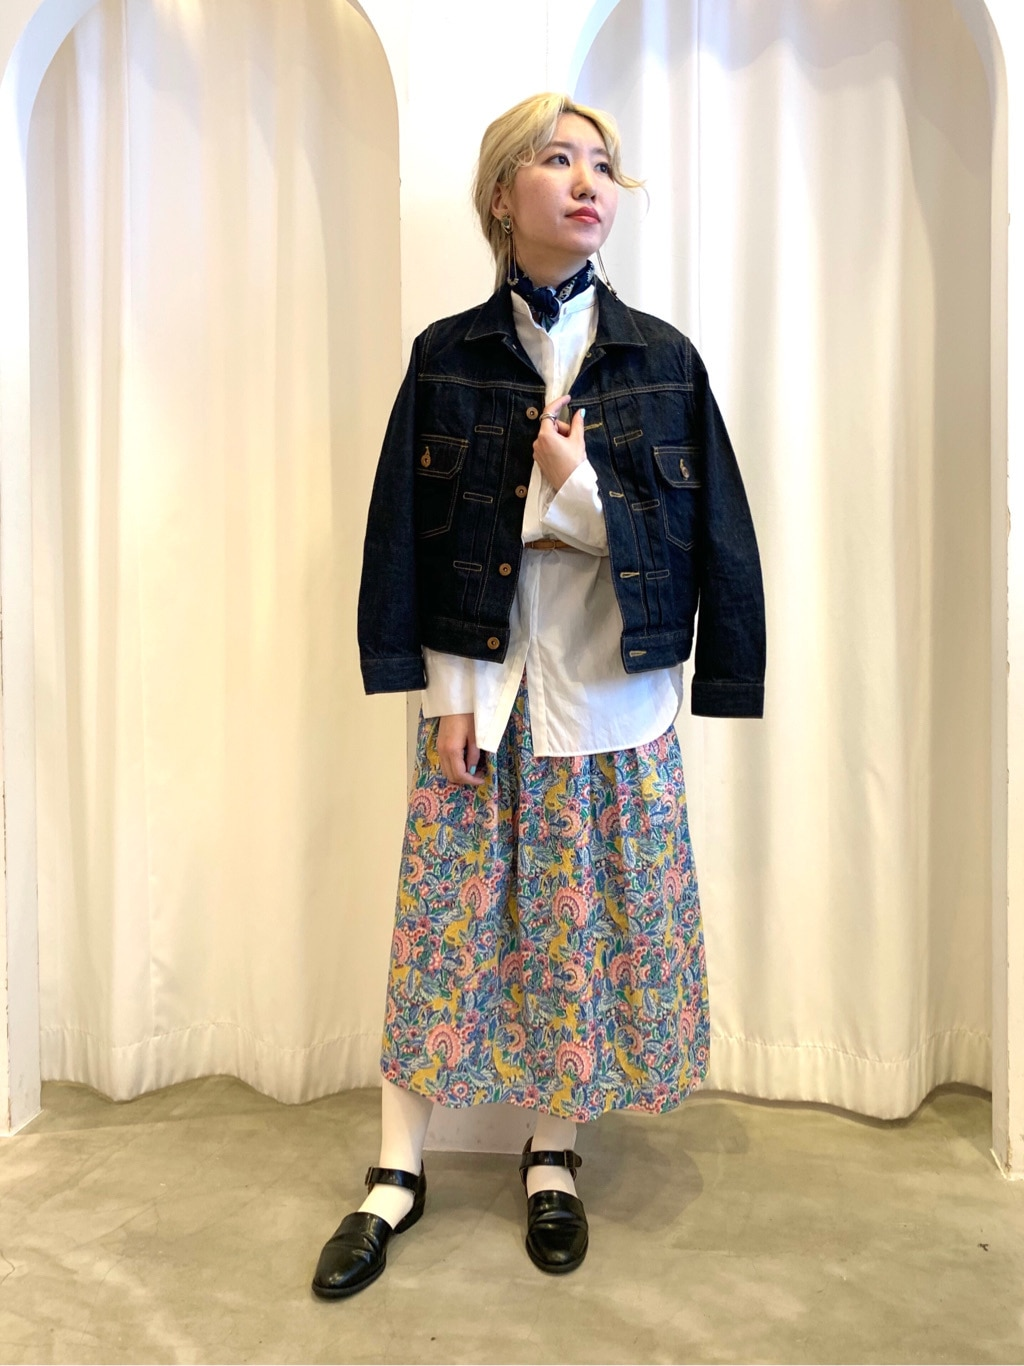 Dot and Stripes CHILD WOMAN ラフォーレ原宿 身長:160cm 2020.12.20